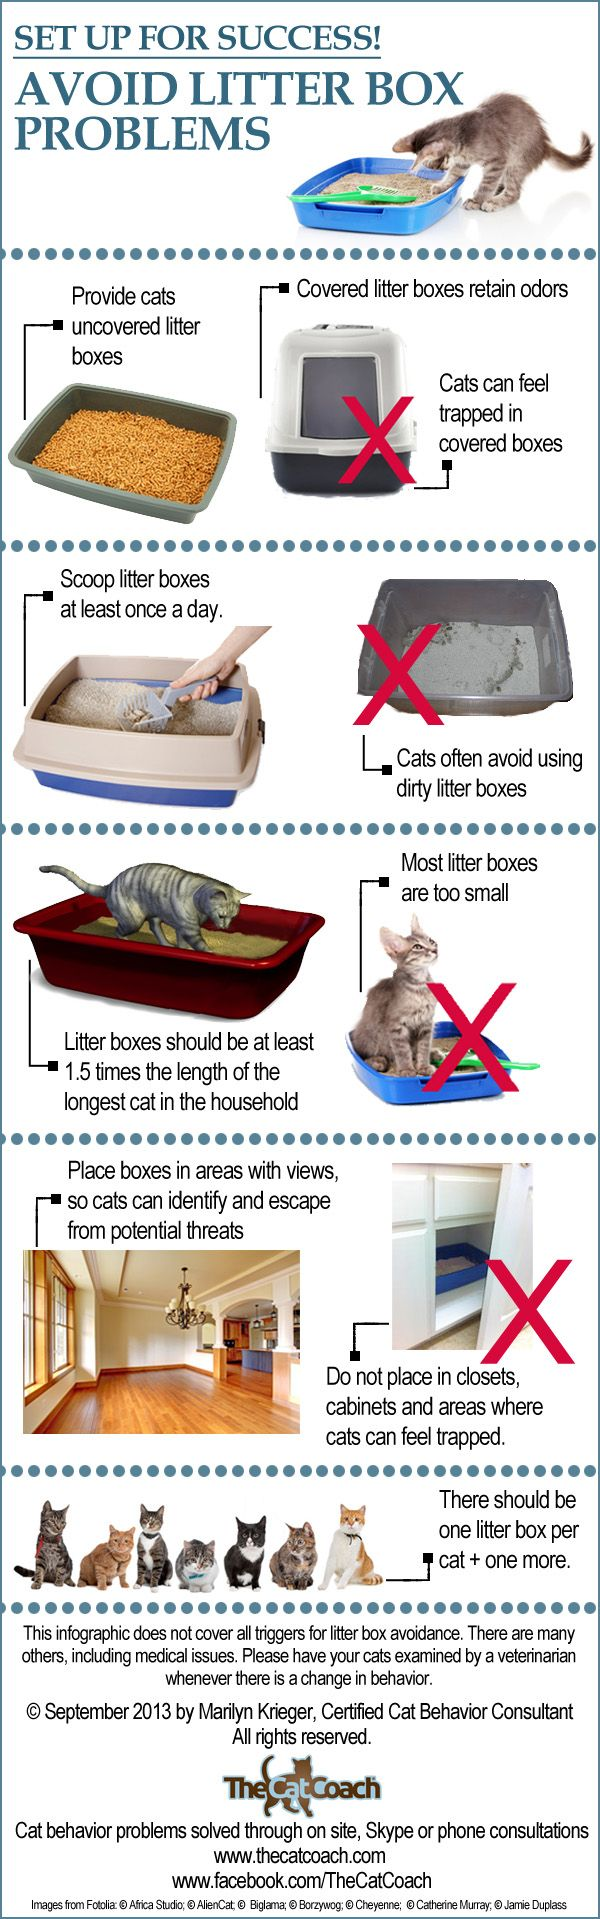 Litter box issues are the number one reasons people seek me out for a cat behavior consultation. Because of that, I created this info-graphi...